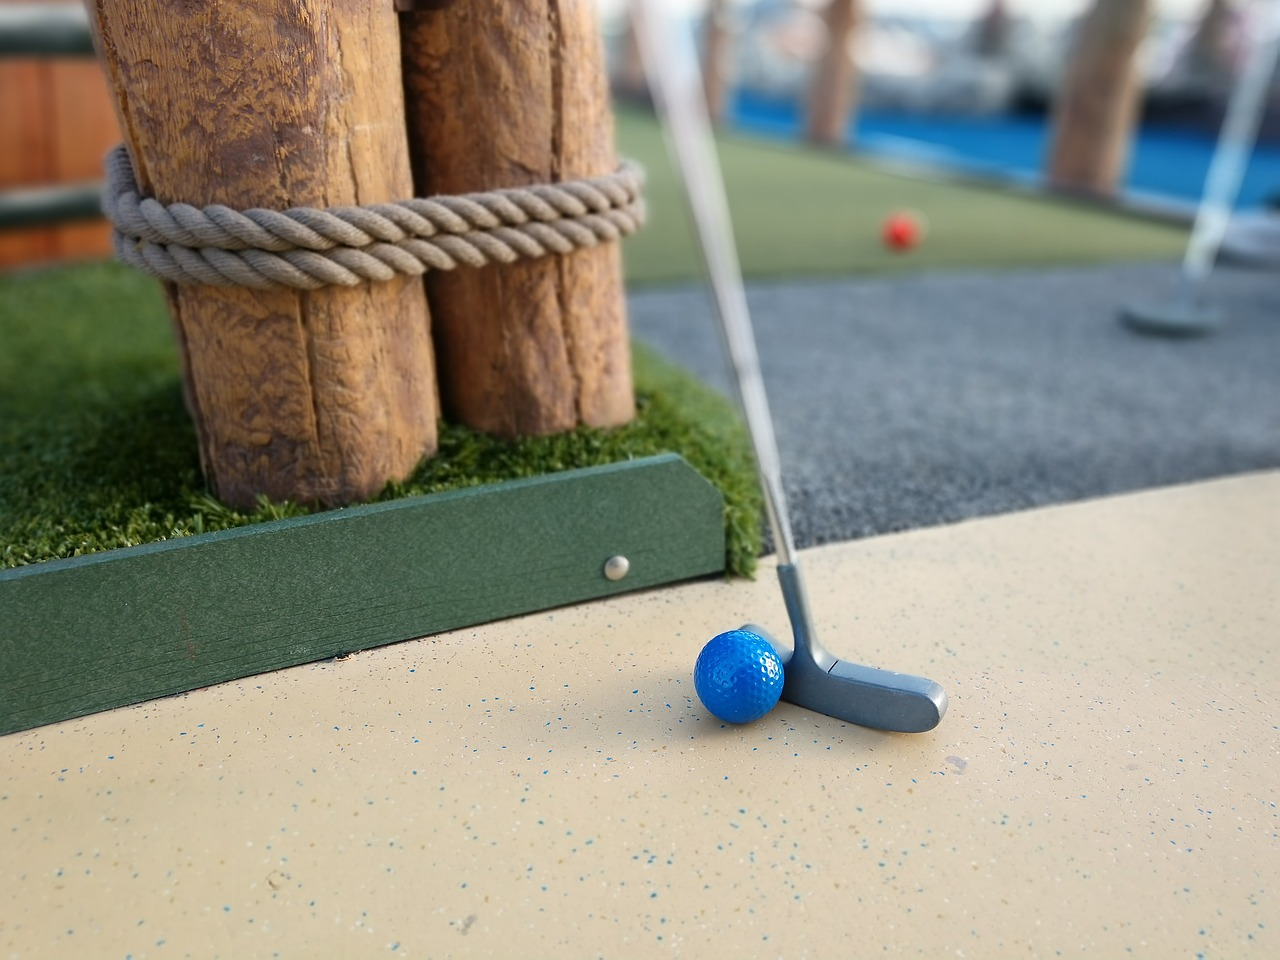 Mini Golf can be fun and goofy while also giving you the chance to get to know each other better.